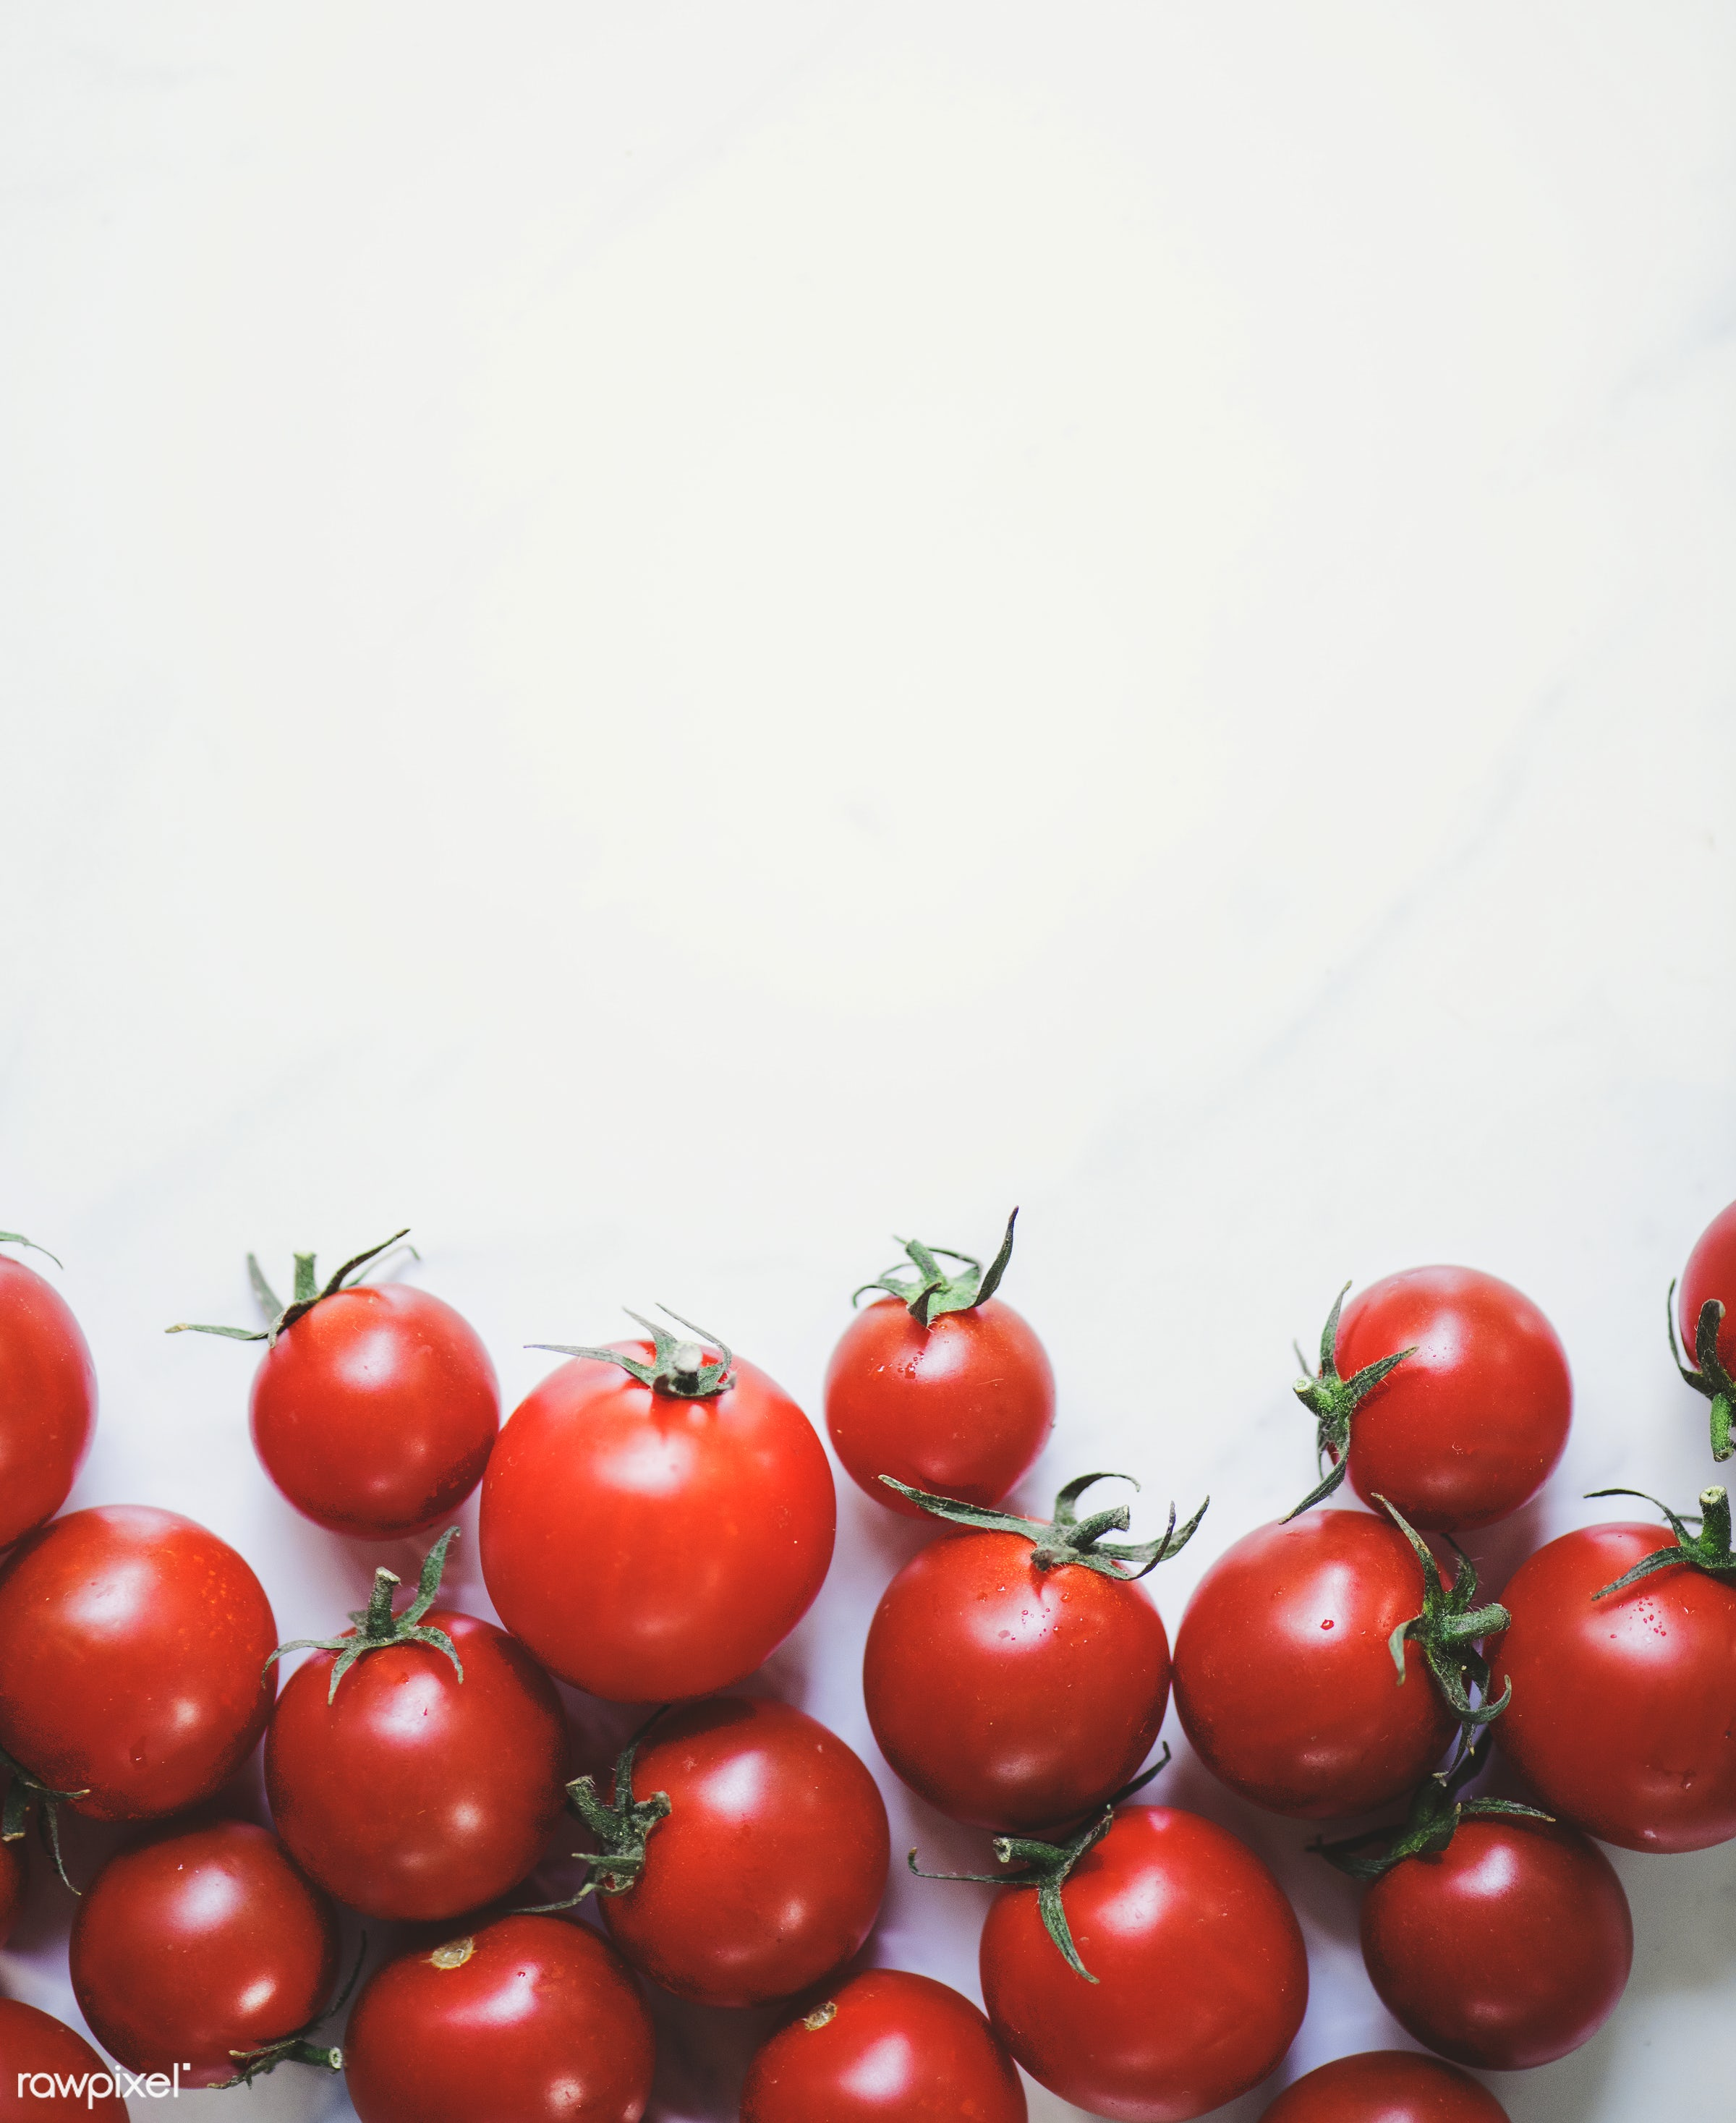 Tomatoes - raw, nobody, isolated on white, farm, real, nature, fresh, aerial view, products, closeup, isolated, agriculture...